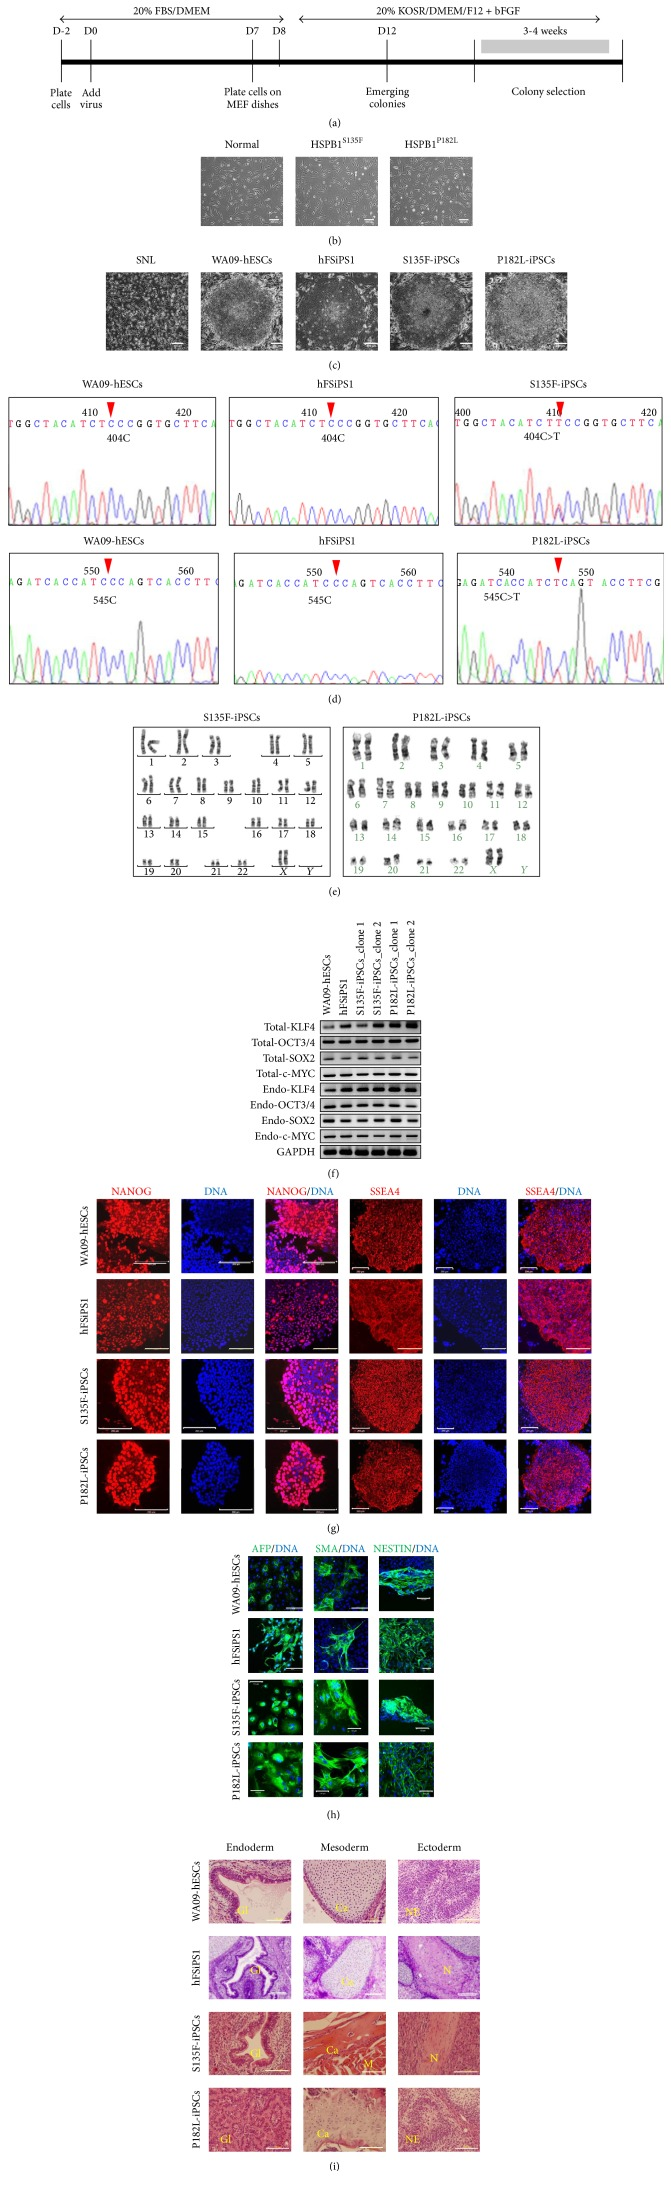 Generation of CMT2F patient and dHMN2B patient-derived iPSCs. (a) Experimental timeline for iPSC generation. KOSR, KnockOut™ serum replacement; bFGF, basic fibroblast growth factor. (b) Morphology of fibroblasts from normal individual and patients (original magnification, 50x). Scale bars: 200 μ m. (c) iPSC colonies showed ESC-like morphology, such as a flat cobblestone-like appearance with individual cells having a high nucleus-to-cytoplasm ratio (original magnification, 50x). Scale bars: 200 μ m. (d) CMT2F-iPSCs and dHMN2B-iPSCs had preserved point mutation sites in the HSPB1 gene, verified by sequencing of RT-PCR products. (e) CMT2F-iPSCs and dHMN2B-iPSCs maintained normal karyotype. (f) Expression of total and endogenous Klf4, Oct3/4, Sox2 , and c-Myc in CMT2F-iPSCs and dHMN2B-iPSCs was verified by RT-PCR. Two clones from each of the patients-derived iPSCs were tested (clone 1 and clone 2). (g) ESCs and iPSCs expressed stem cell markers such as NANOG (in the nucleus; original magnification, 200x) and <t>SSEA4</t> (in the cytoplasm; original magnification, 100x). Scale bars: 200 μ m. (h) EB-mediated in vitro spontaneous differentiation of ESCs and iPSCs resulted in the expression of three-germ-layer markers such as AFP (endoderm), SMA (mesoderm), and nestin (ectoderm; original magnification, 200x). Scale bars: 100 μ m. (i) ESCs and iPSCs showed in vivo pluripotency by forming teratomas 8 weeks after subcutaneous injection into NOD/SCID mice. Teratomas consisted of various three-germ-layer tissues including columnar gland epithelial cells with secretions [Gl] for endodermal tissue, muscle [M] and cartilage with calcification [Ca] for mesodermal tissue, and neuroectodermal tissue [NE] and nerve axonal bundle [N] for ectodermal tissue (original magnification, 400x). Scale bars: 100 μ m.